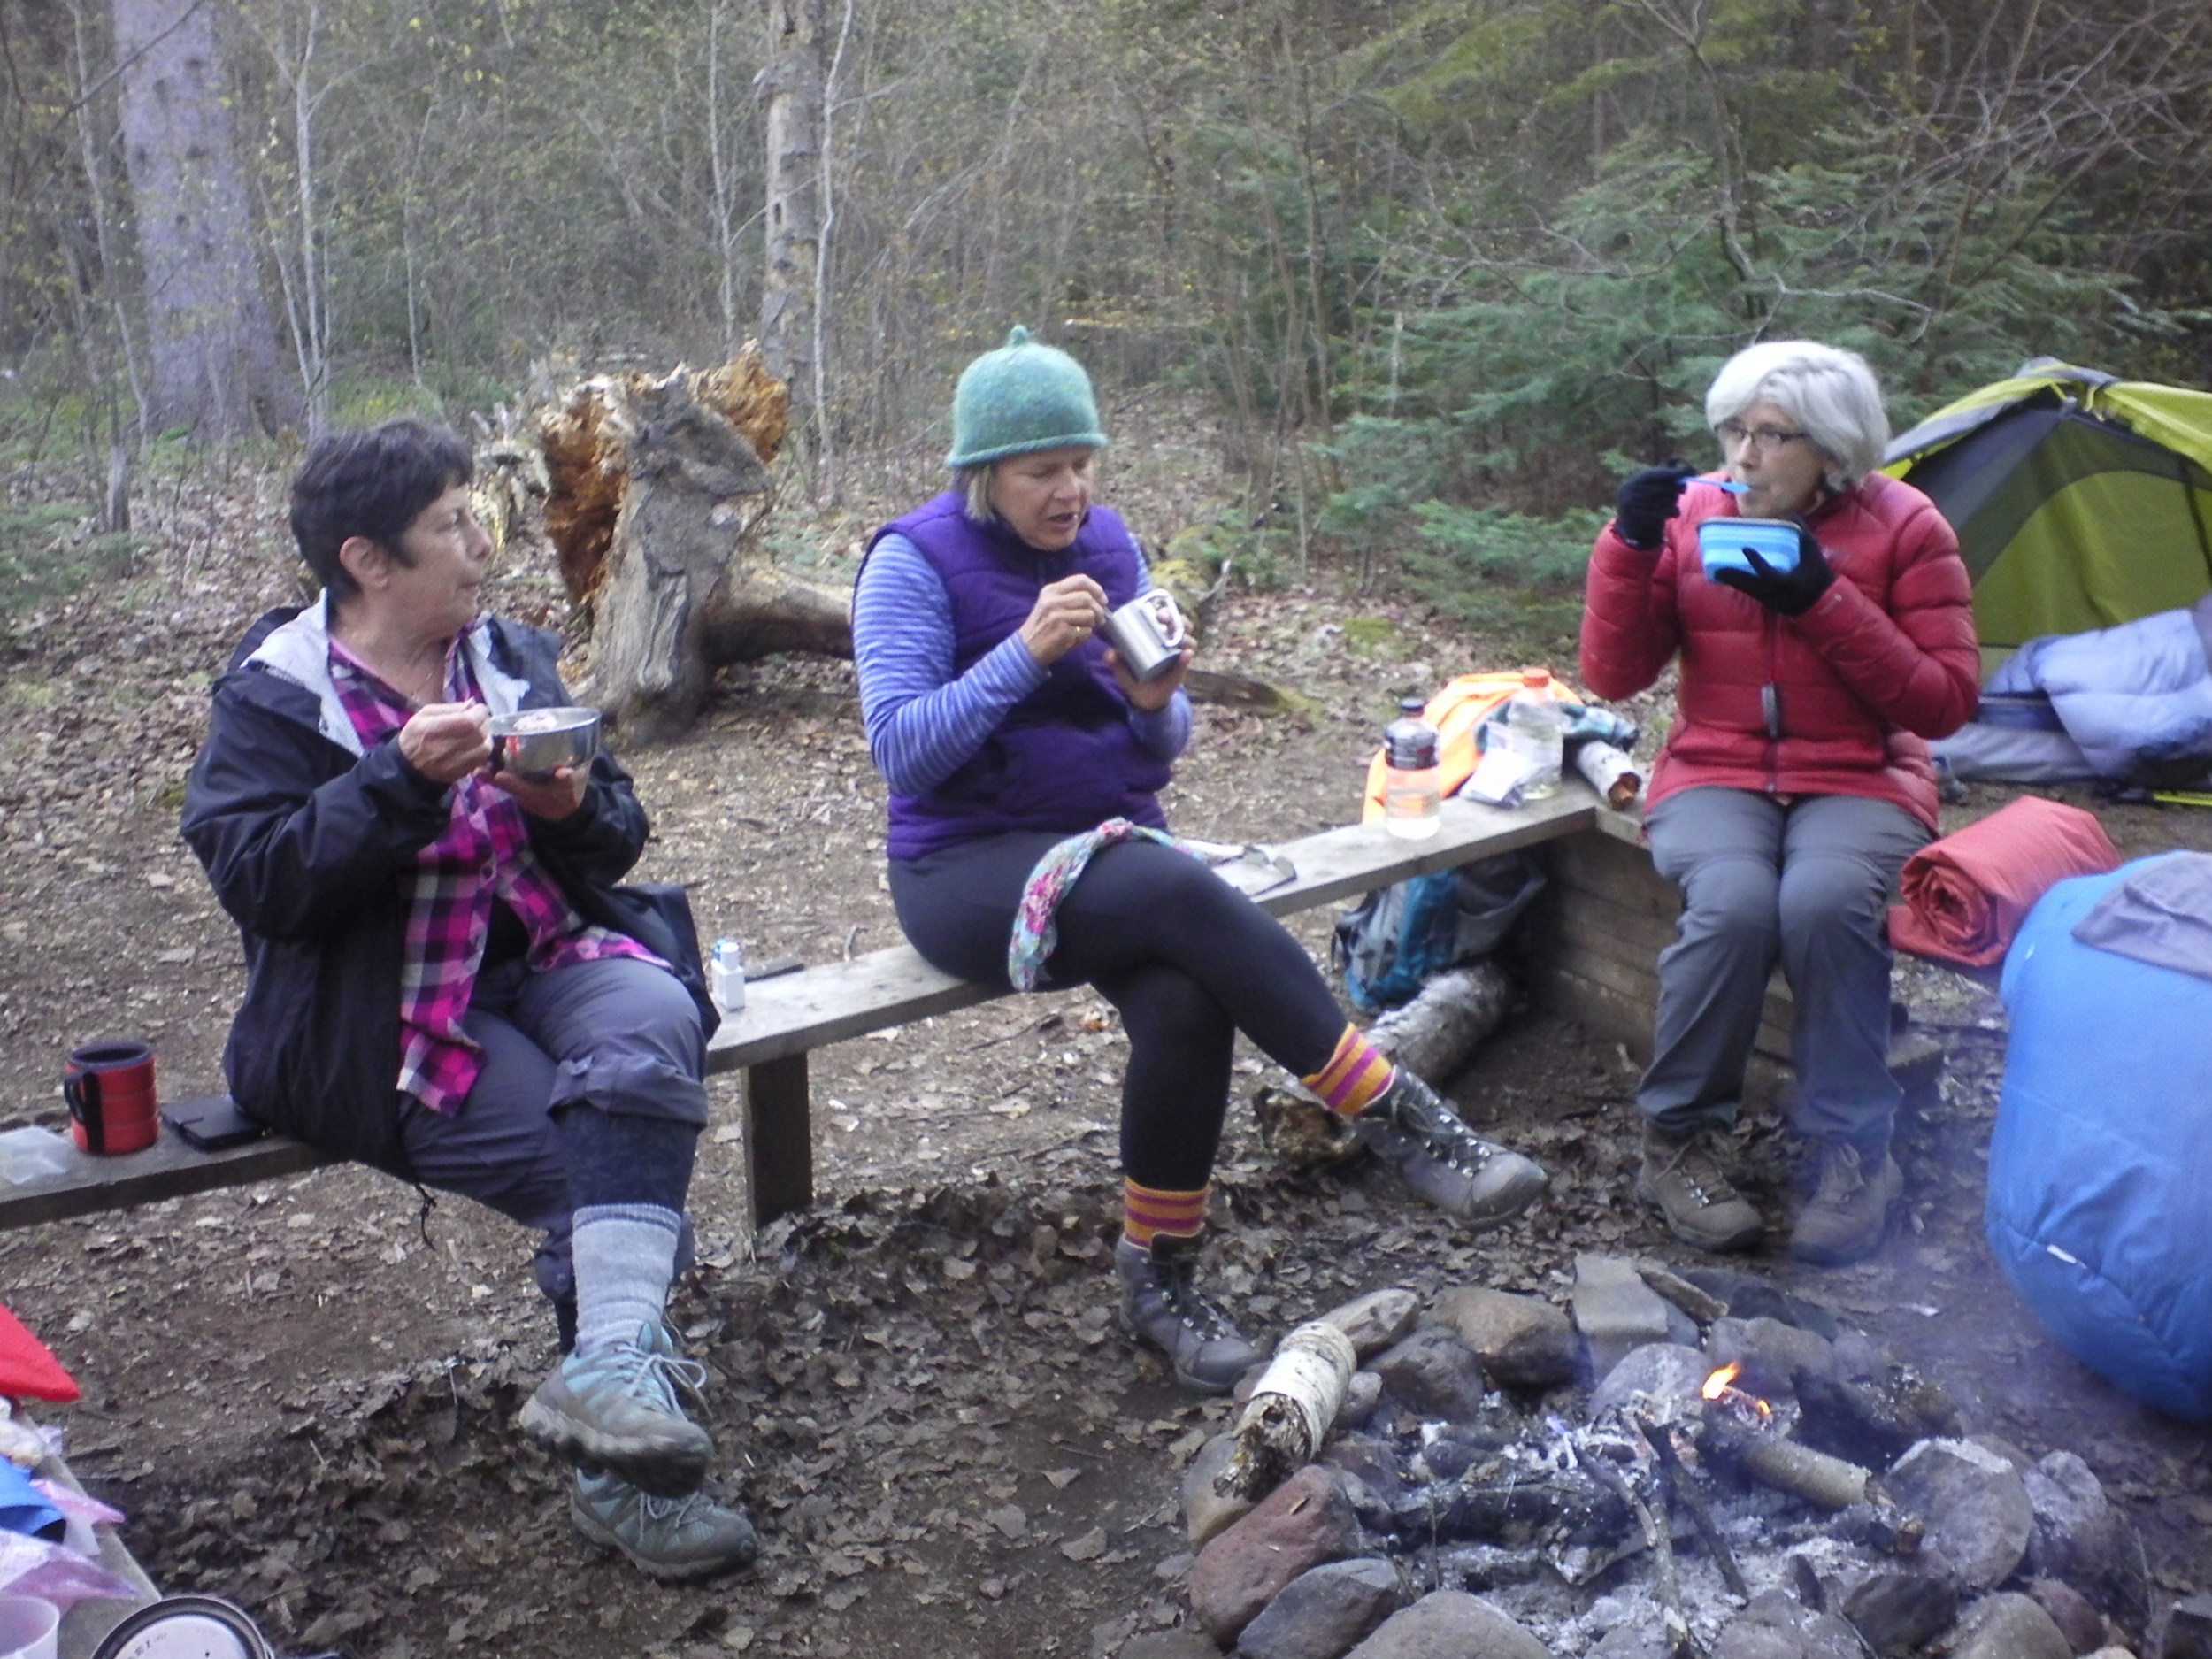 """"""" I had the pleasure of joining Jane and some like-minded women for my very first ever backpacking adventure. This was a decision that was not easy for me to make. At 69 years of age I wasn't confident that I was capable of hiking and camping with everything I need on my back. But . . . this was something I have always wanted to try. My experience exceeded my expectations and gave me confidence that you can do anything you put your mind to. But the really great gift I got from the experience is the knowledge of how to plan and execute an amazing adventure like that. That is knowledge that is mine to keep. I will use that to go on adventures with friends. Amazing time, good food, and bonding with some awesome women. Thanks Jane, you are the best.""""       Beth Unger"""